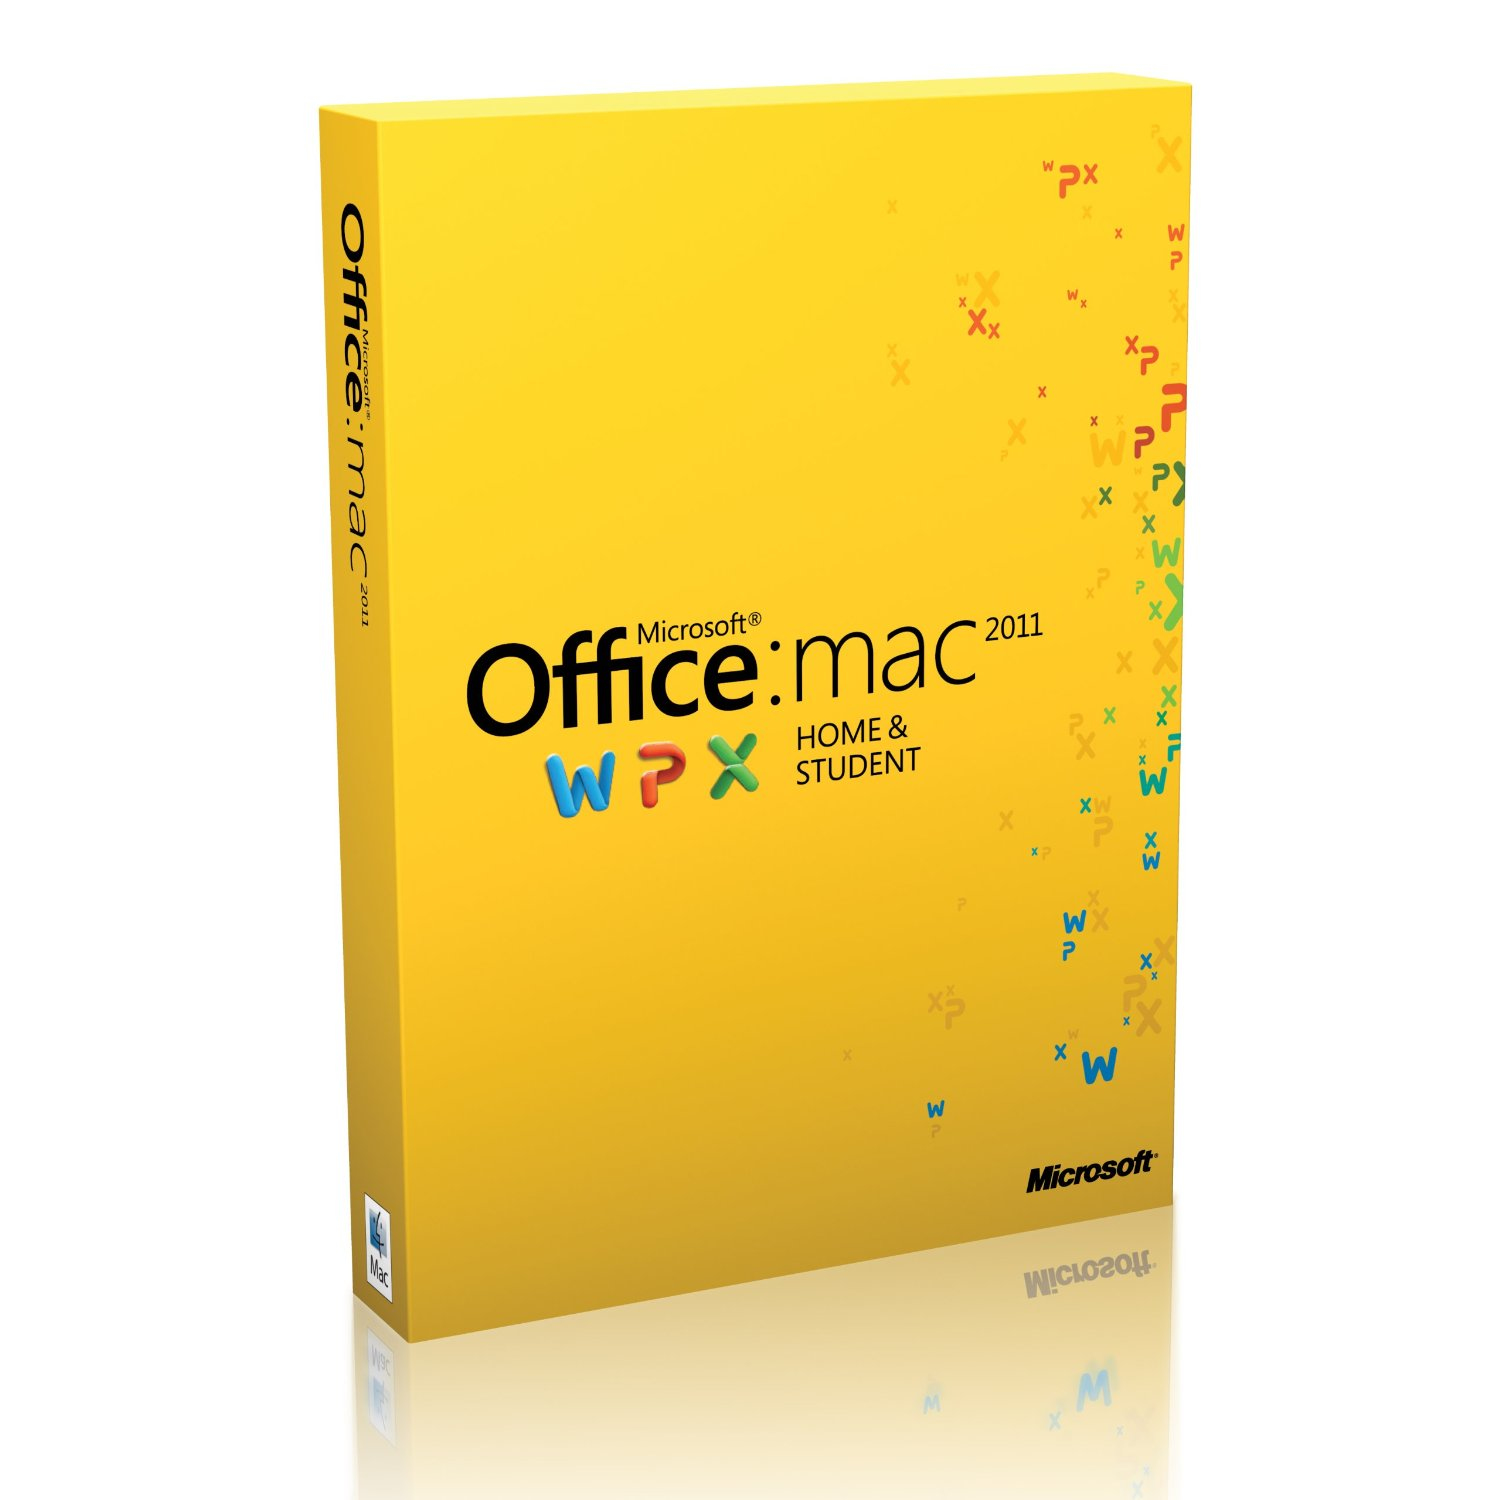 GZA-00269 Microsoft Office Mac Home Student 2011 English Eurozone Medialess - C2000